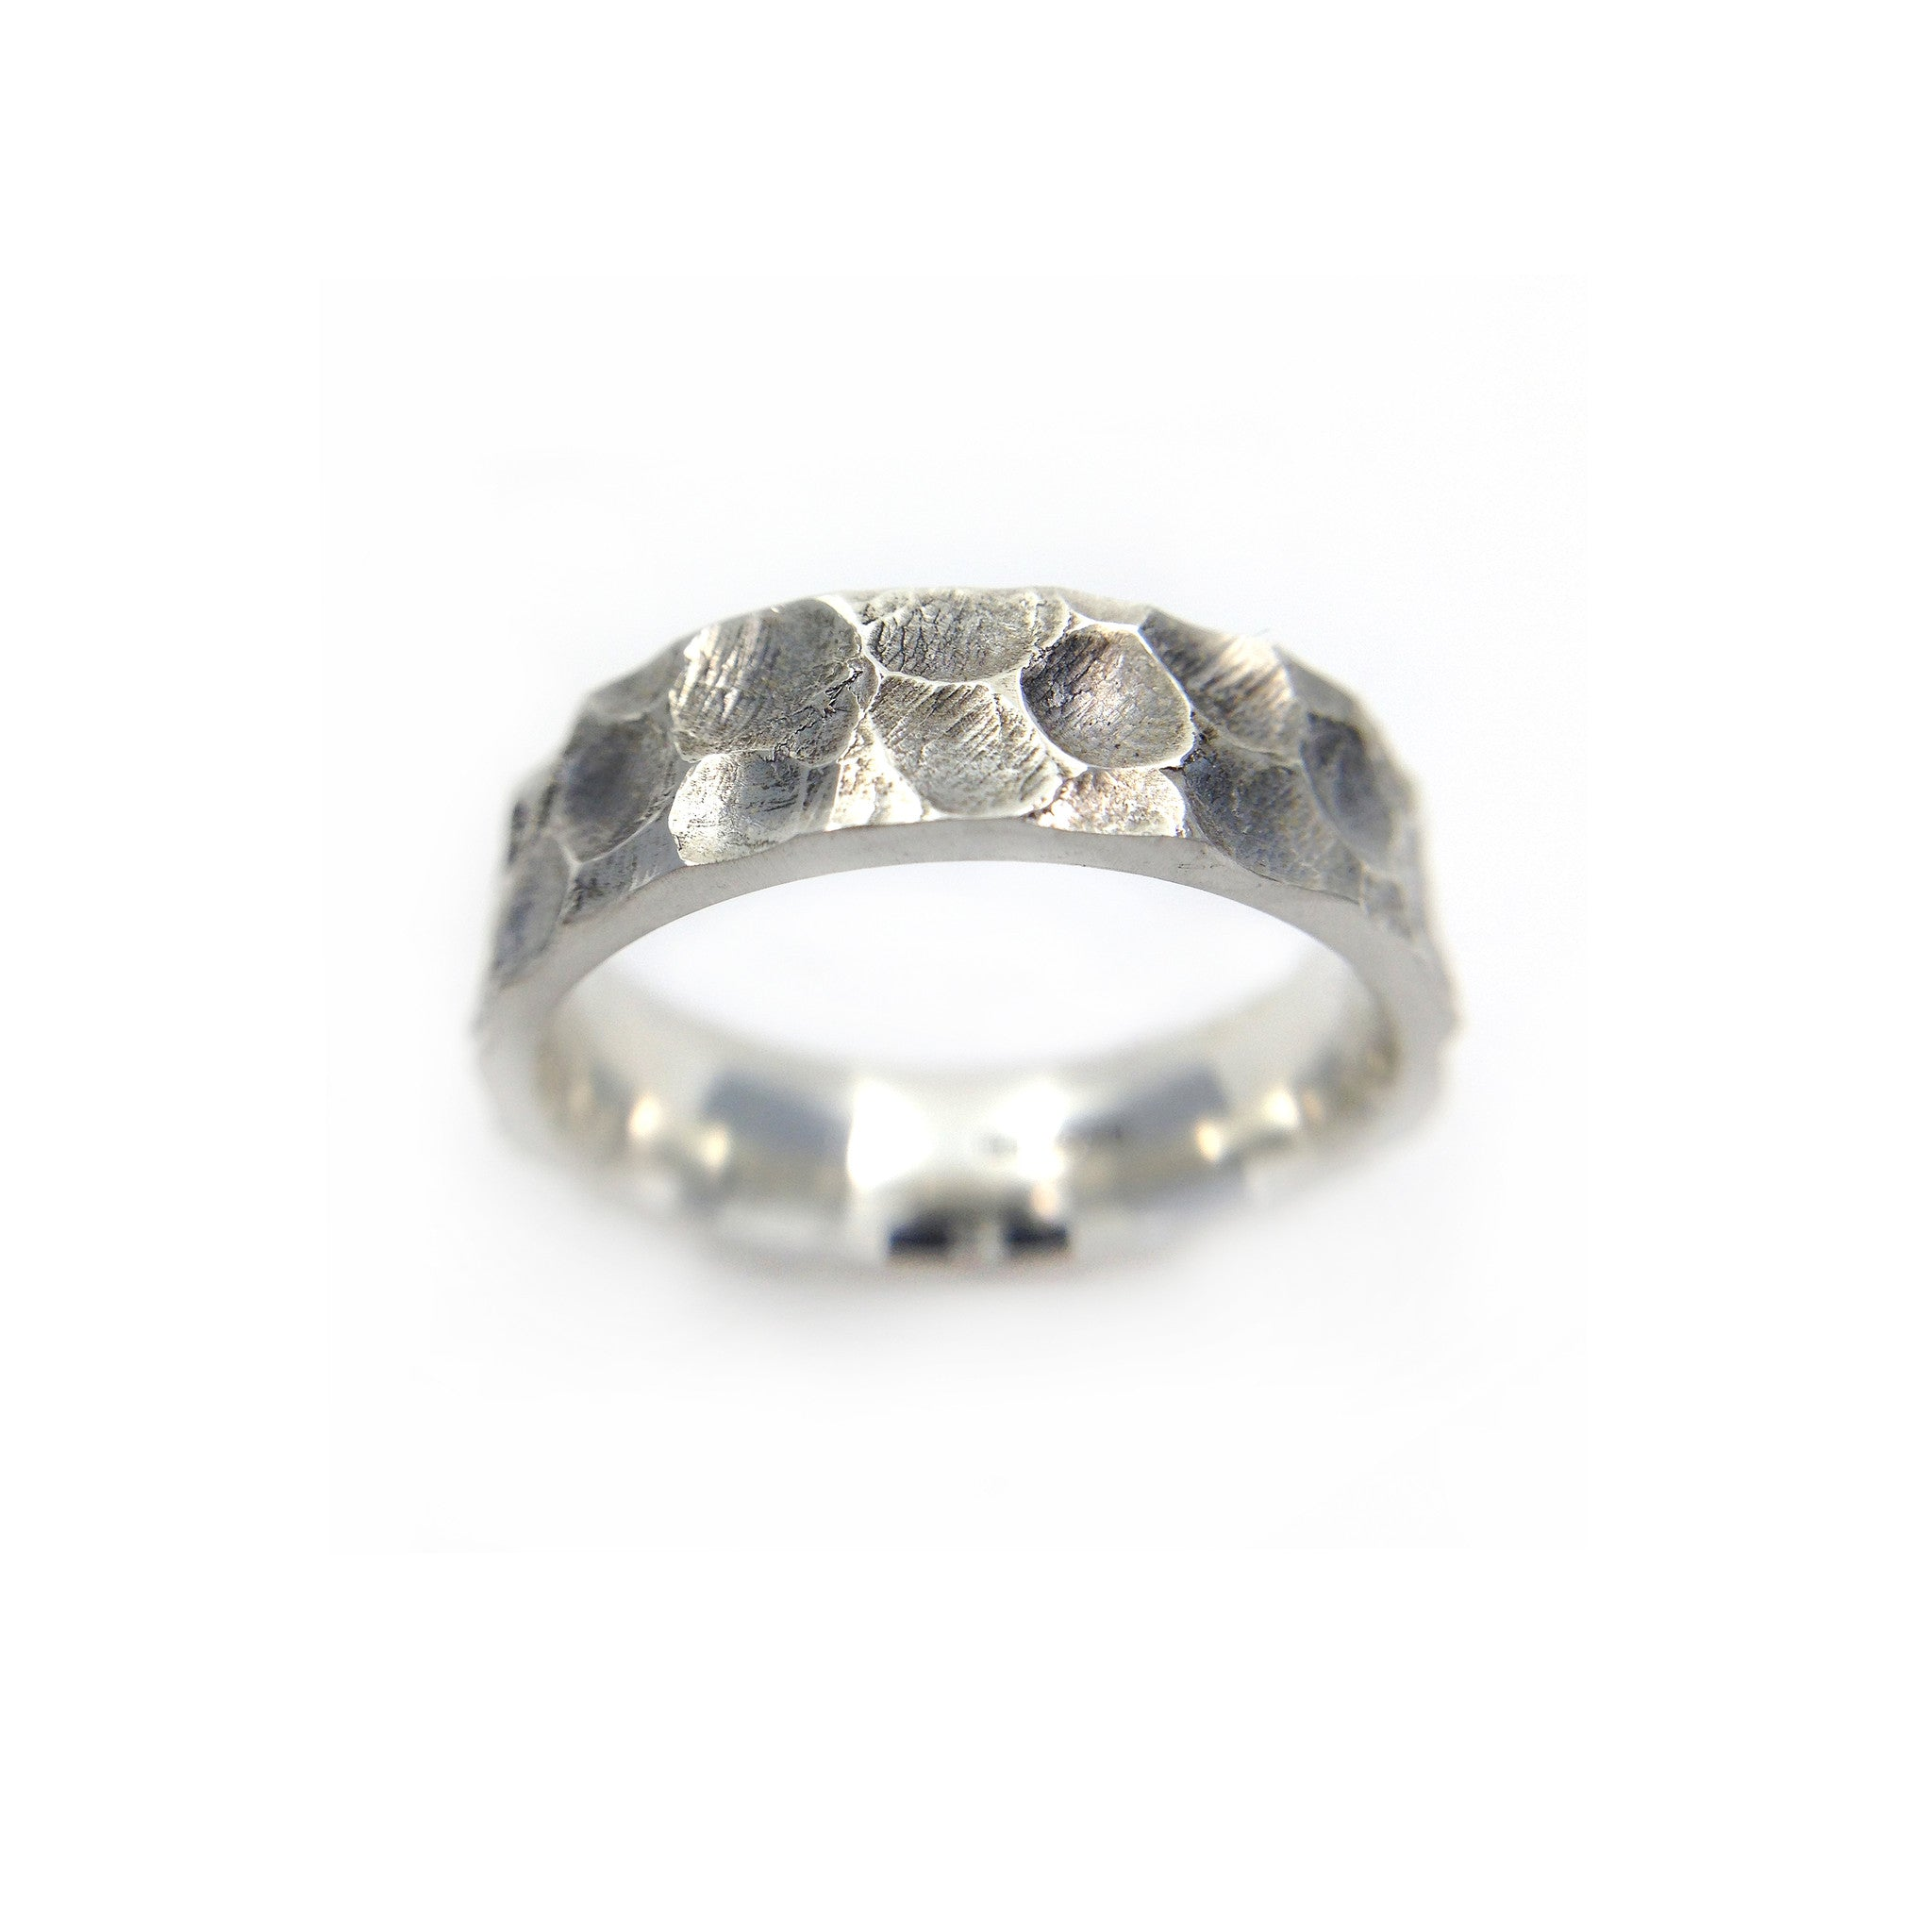 Silver ring by Lion Studio